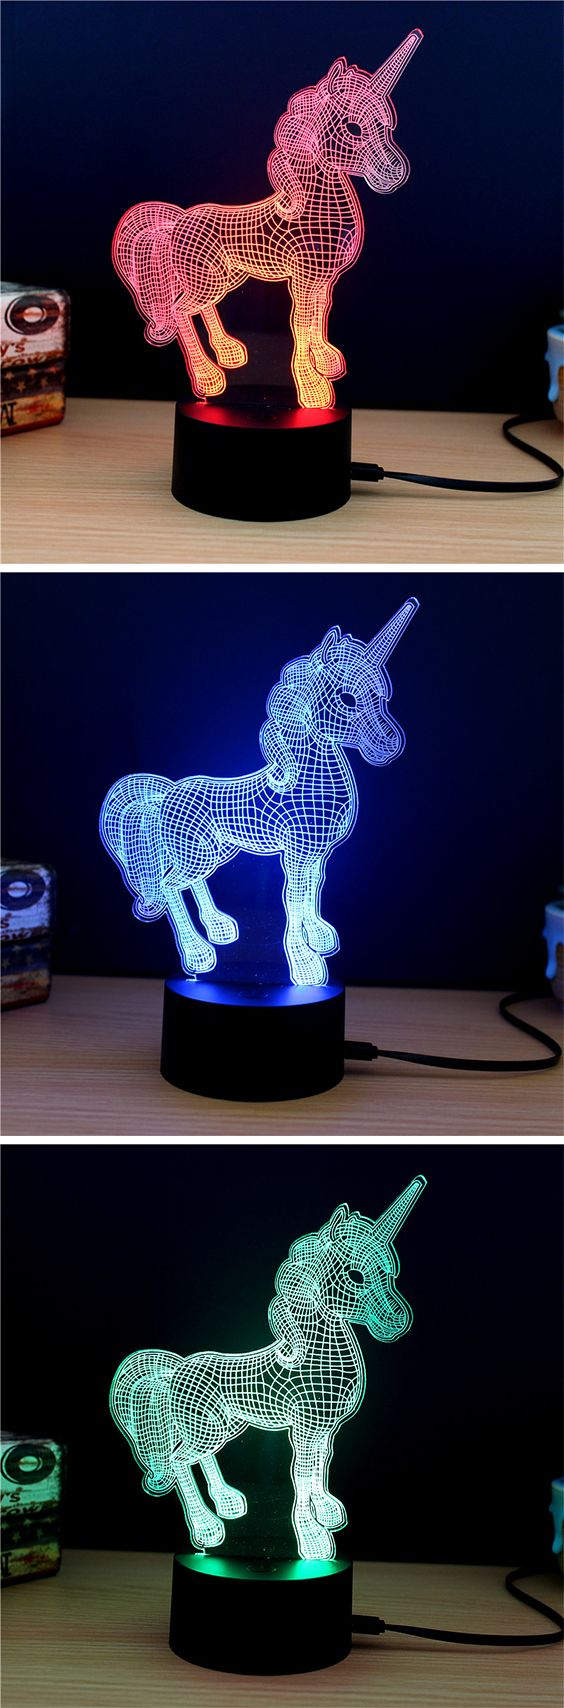 MSparkling TD Creative Animal D LED Lamp in Unicorns